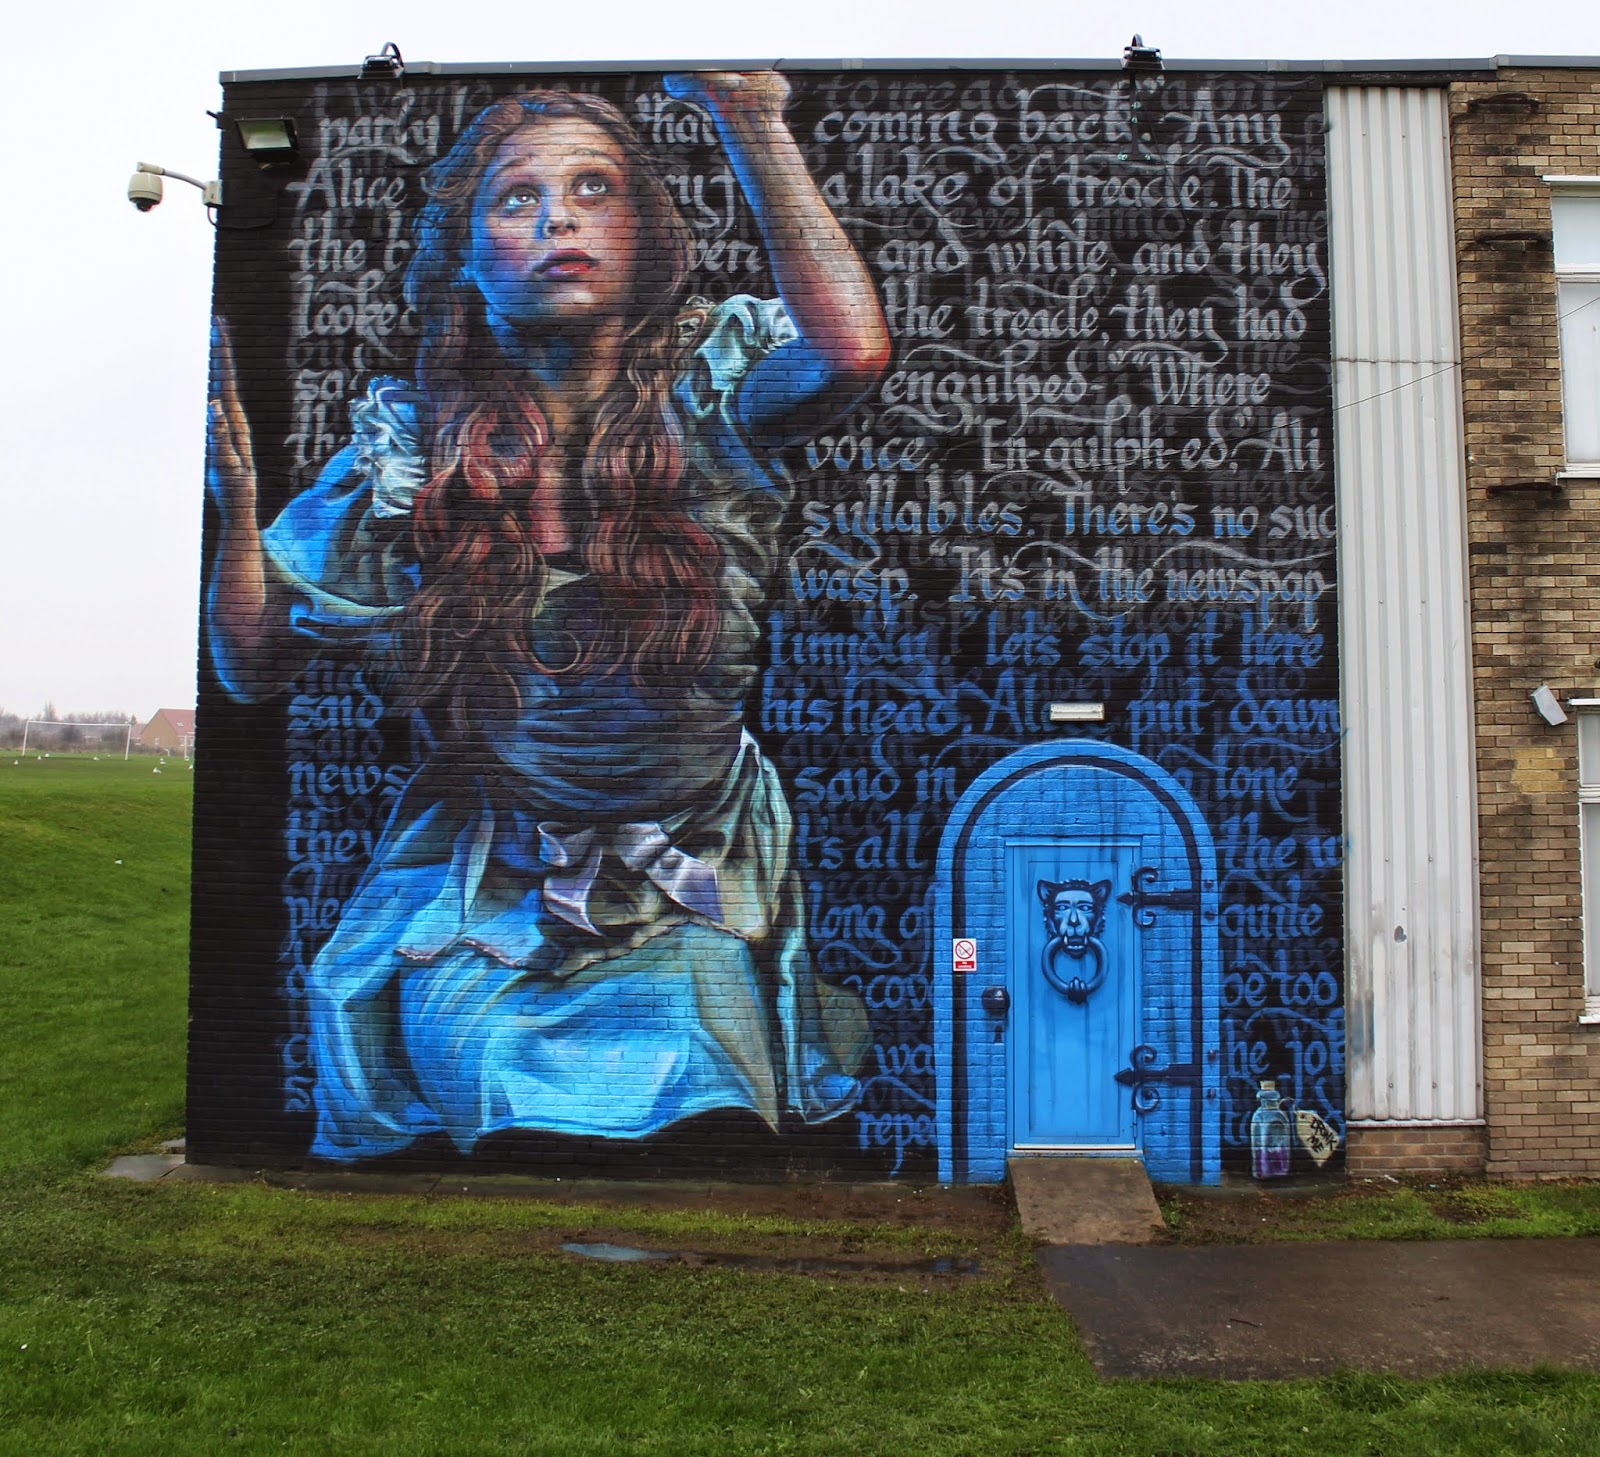 Irony And Frank Styles Paint U201cAlice In Wonderlandu201d, A New Mural In South  Shields, UK